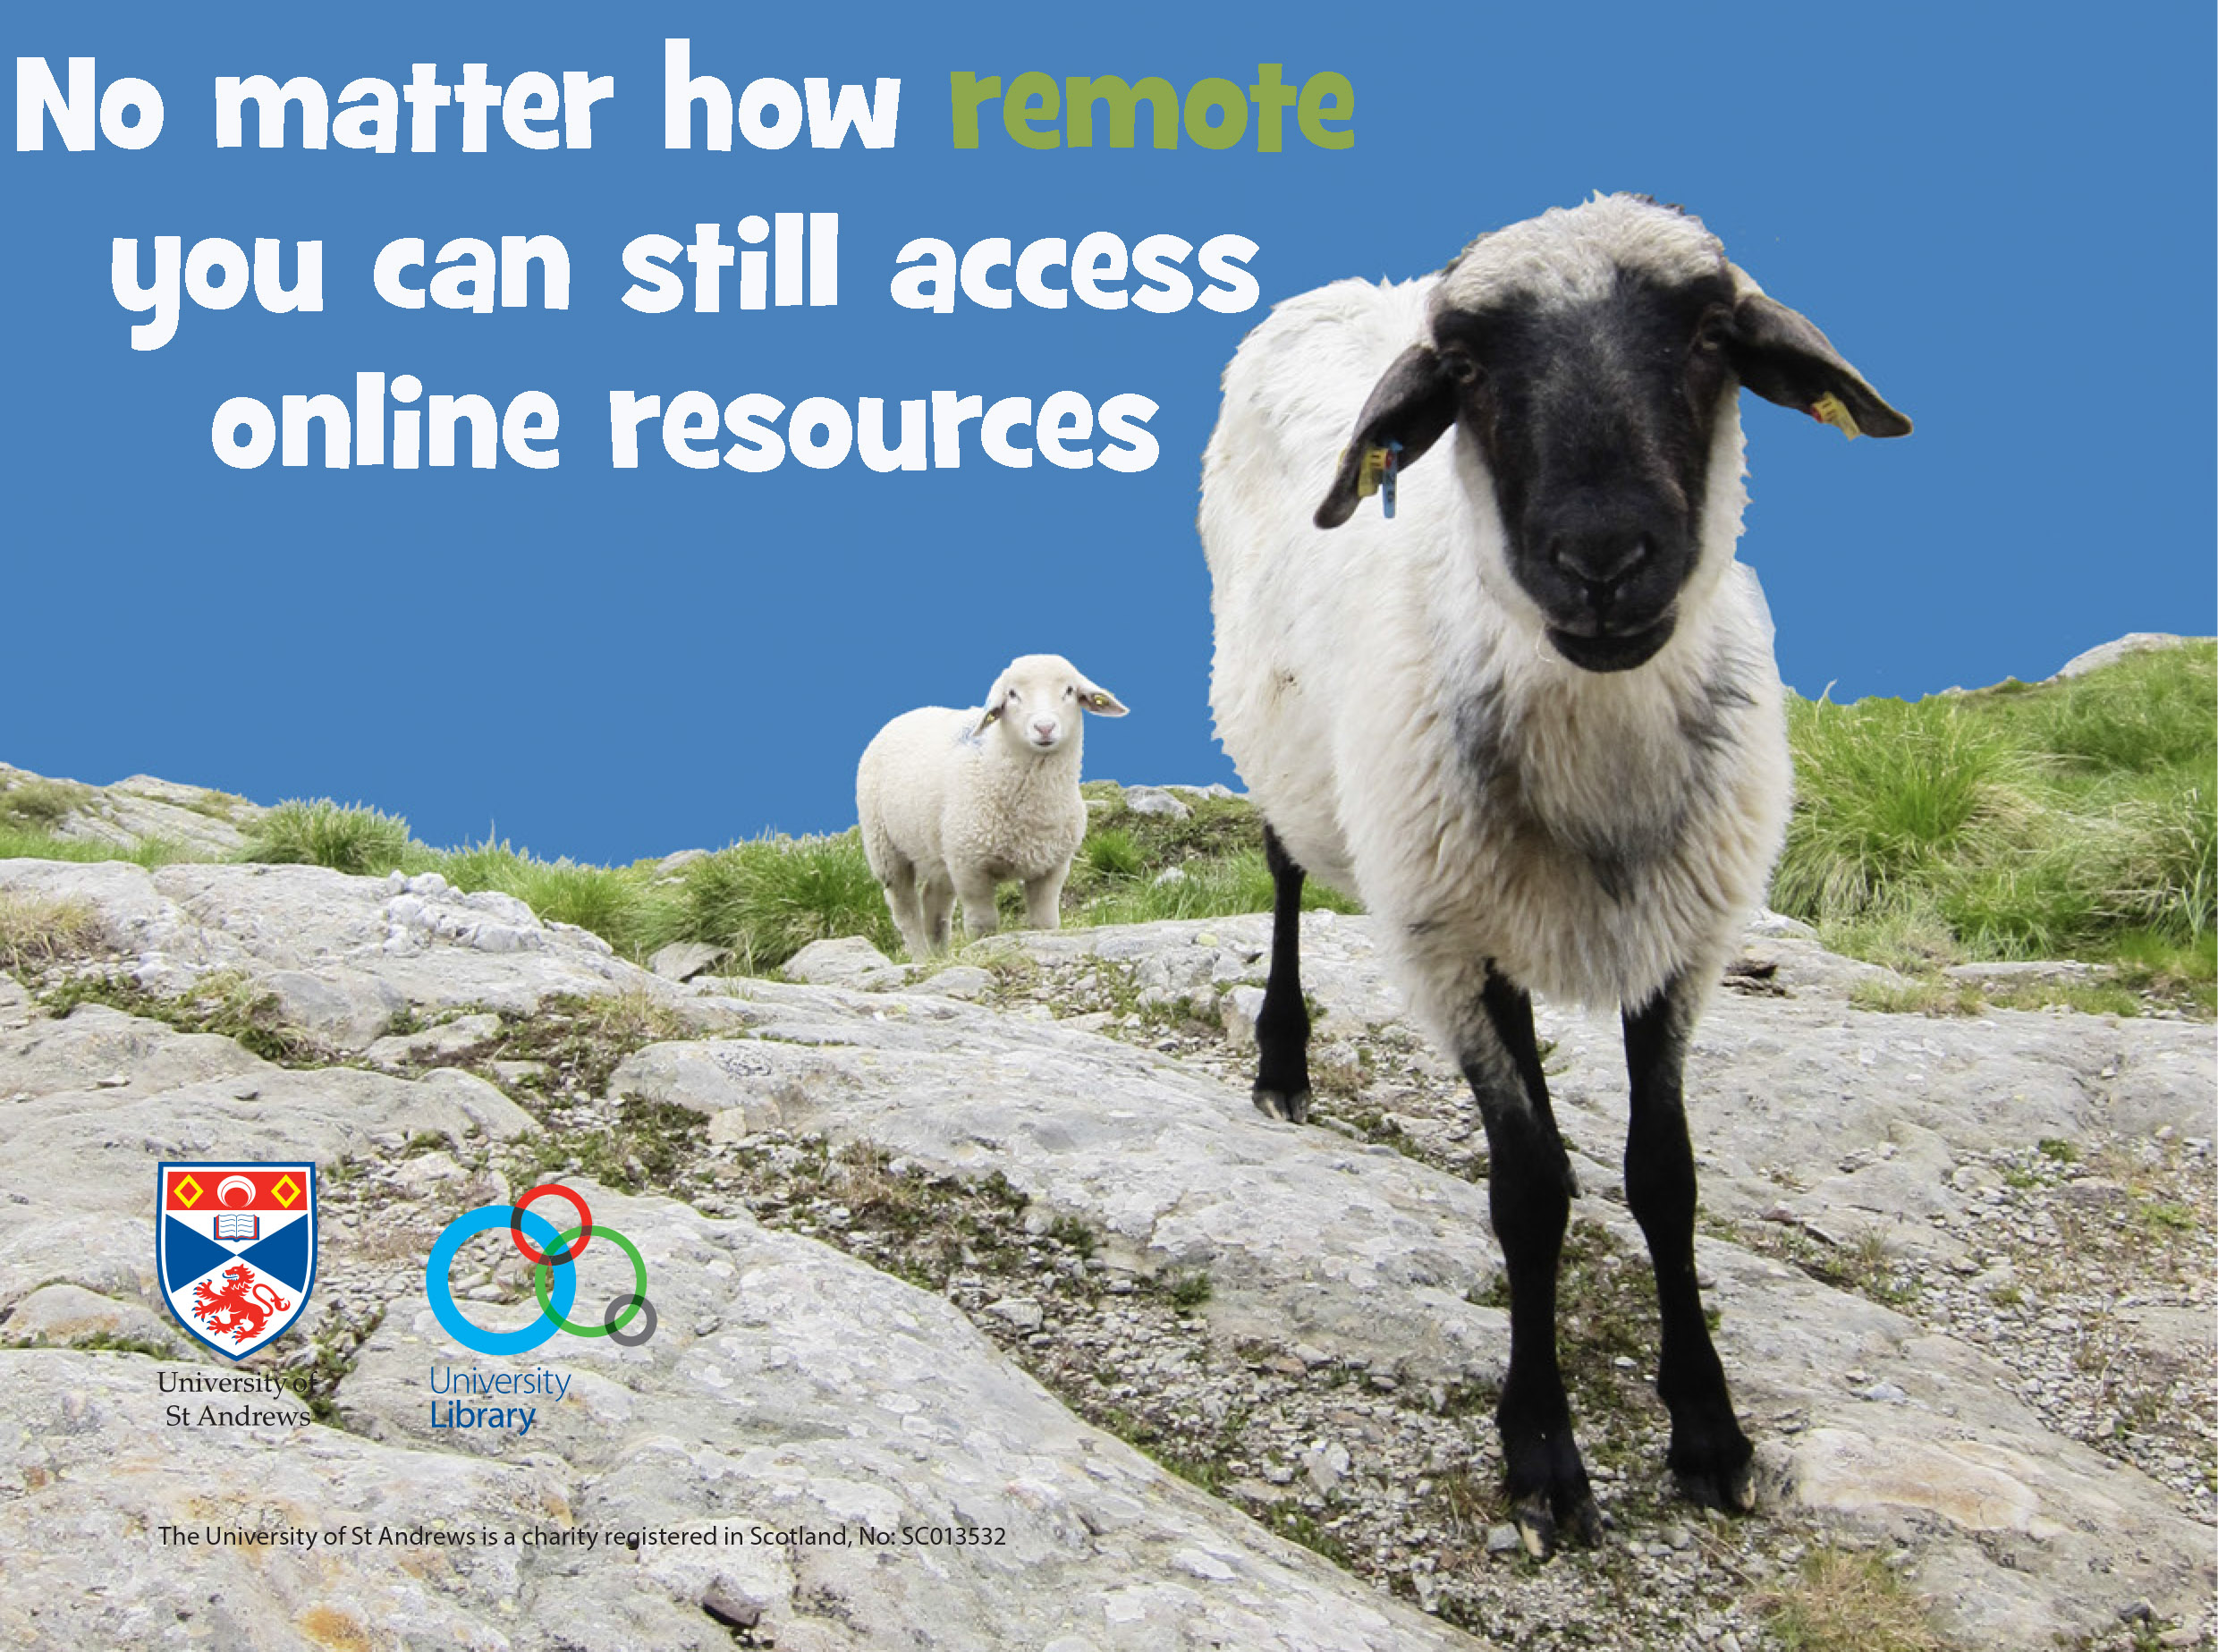 No matter how remote you can still access online resources.  Image of sheep on a hillside.